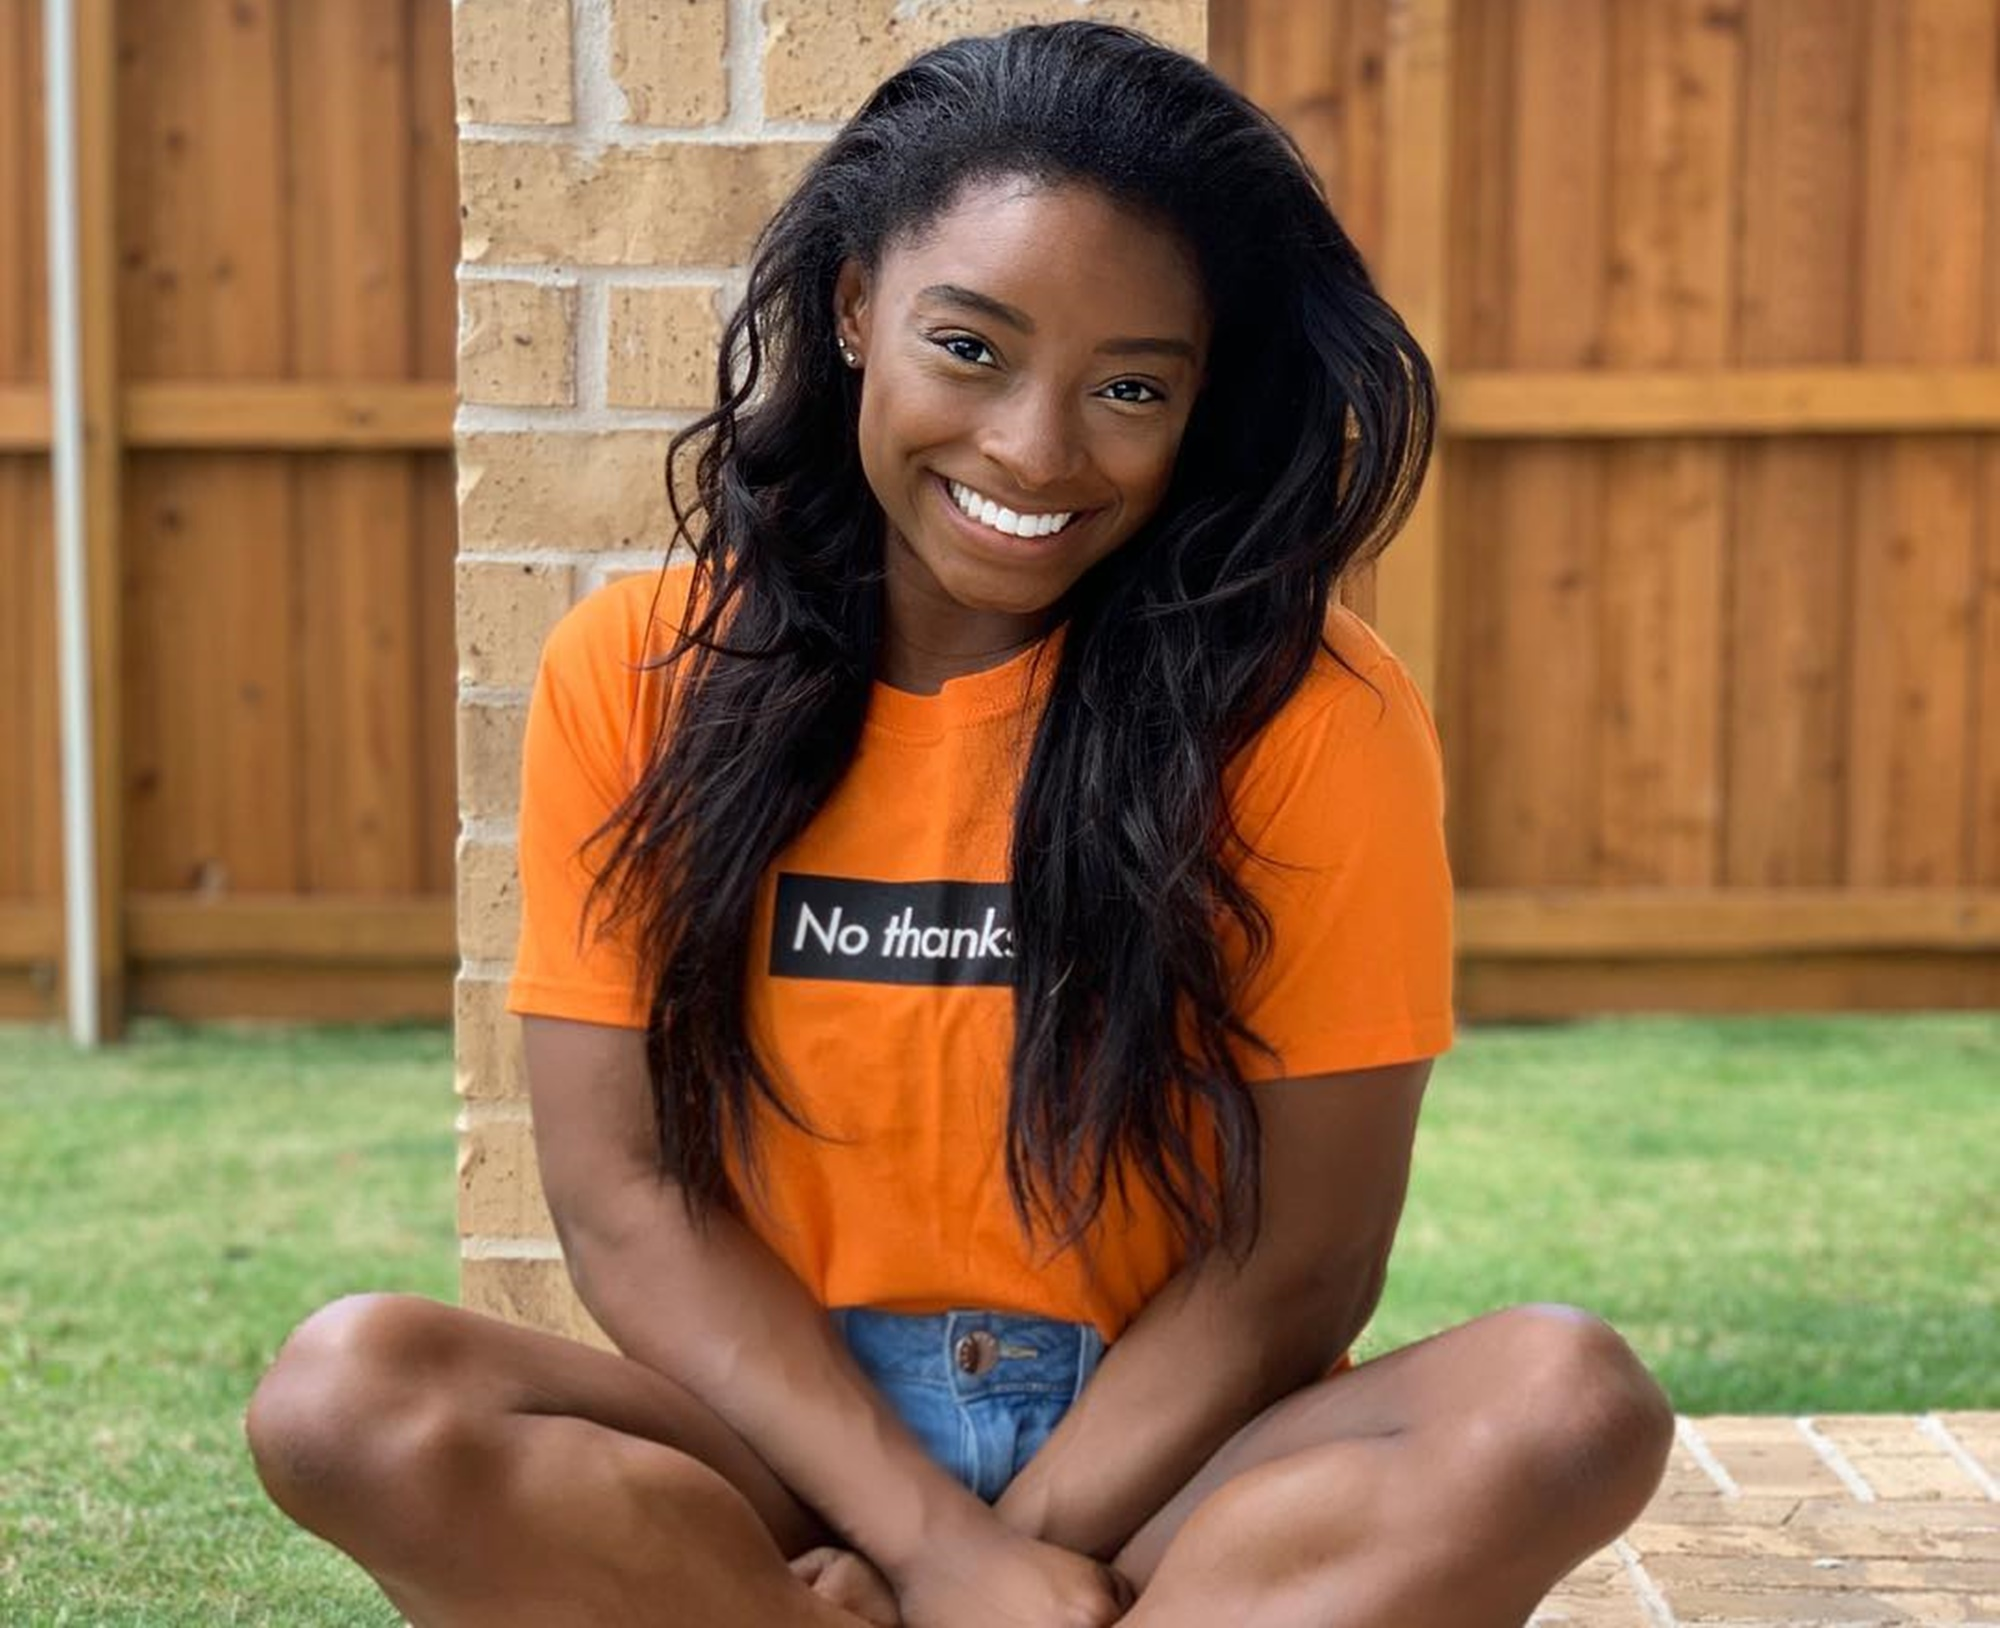 simone-biles-flaunts-her-fit-body-for-coveted-photos-is-she-the-new-naomi-campbell